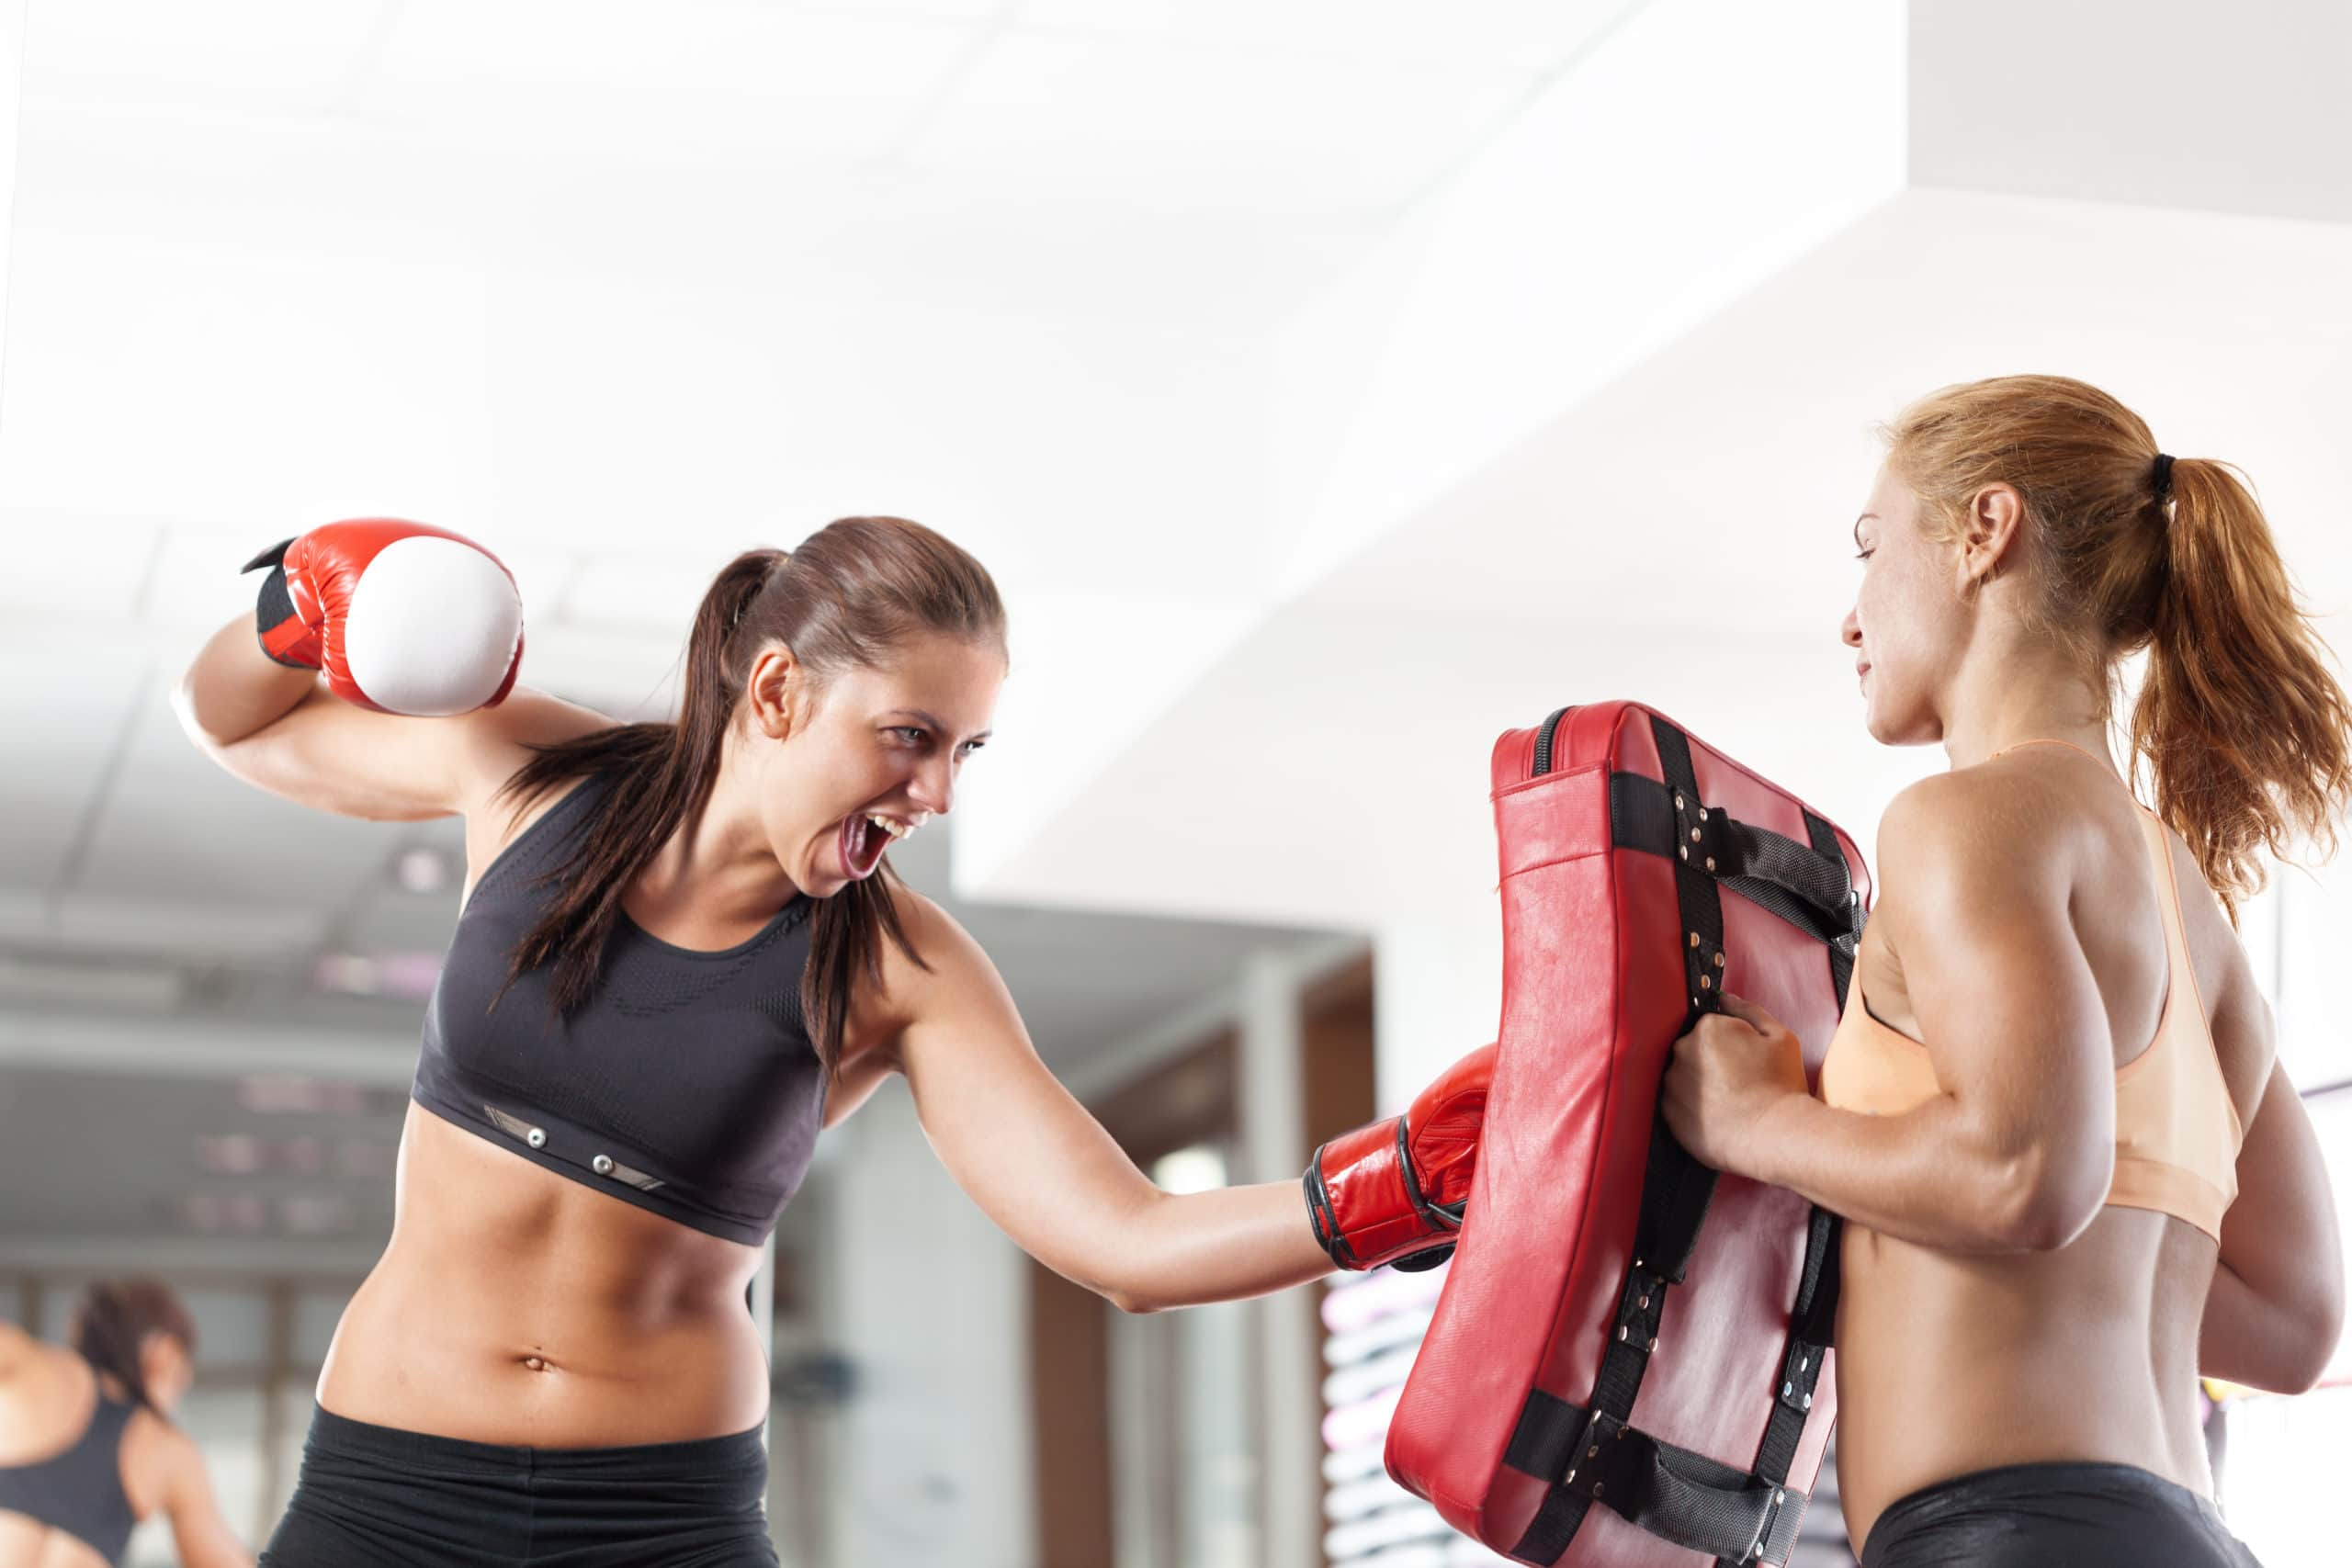 How your mood impacts your workout according to a sports psychologist